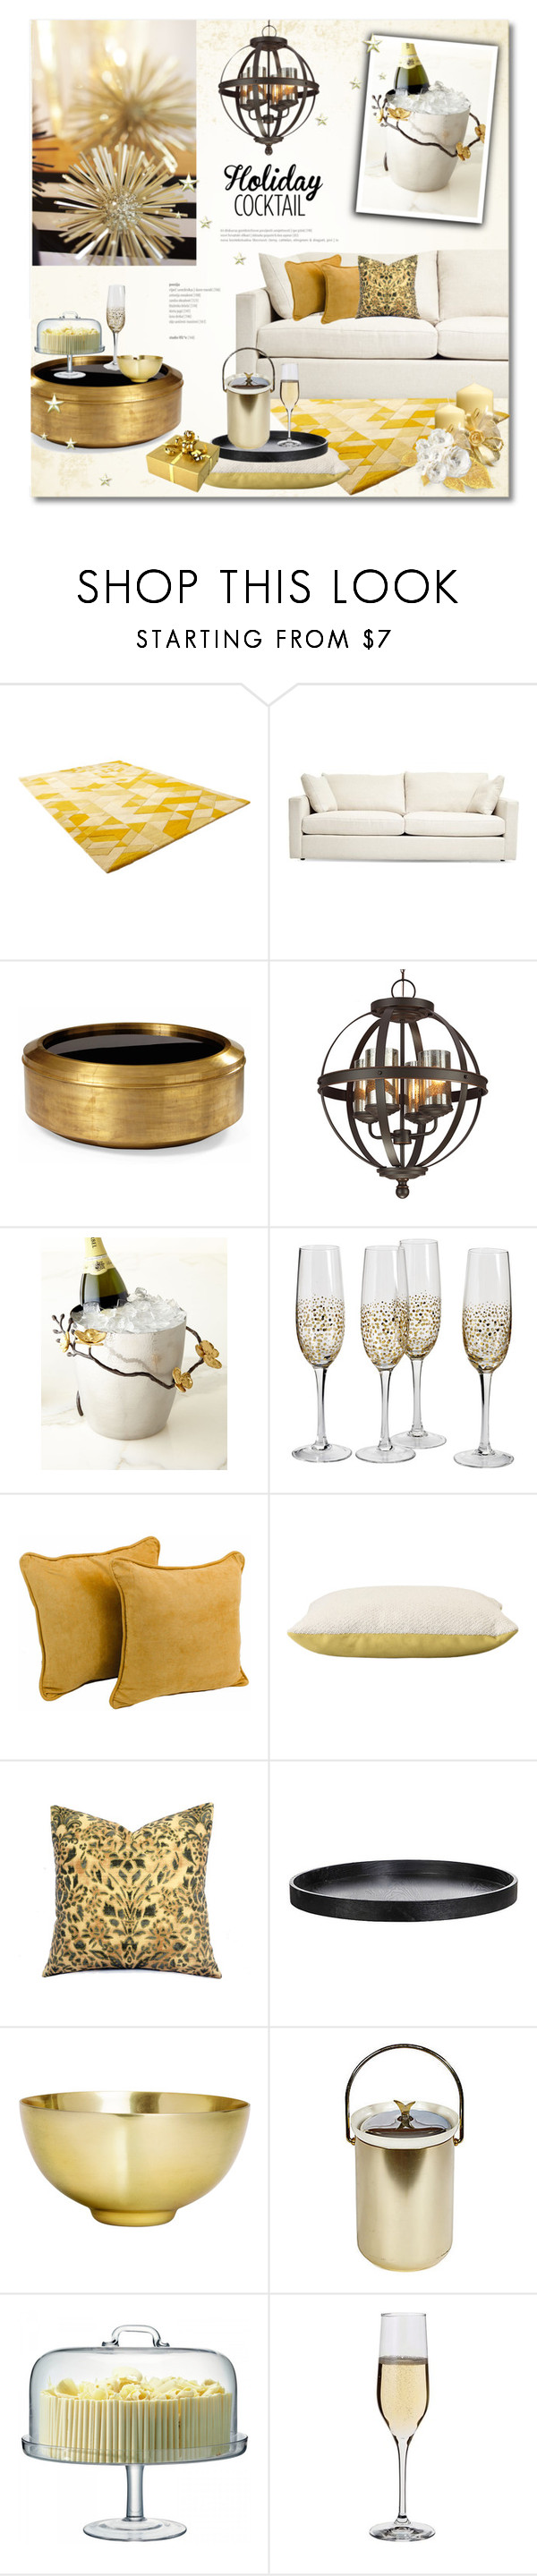 """Holiday Cocktails"" by helenevlacho ❤ liked on Polyvore featuring interior, interiors, interior design, home, home decor, interior decorating, Cyan Design, Sea Gull Lighting, Michael Aram and Blazing Needles"